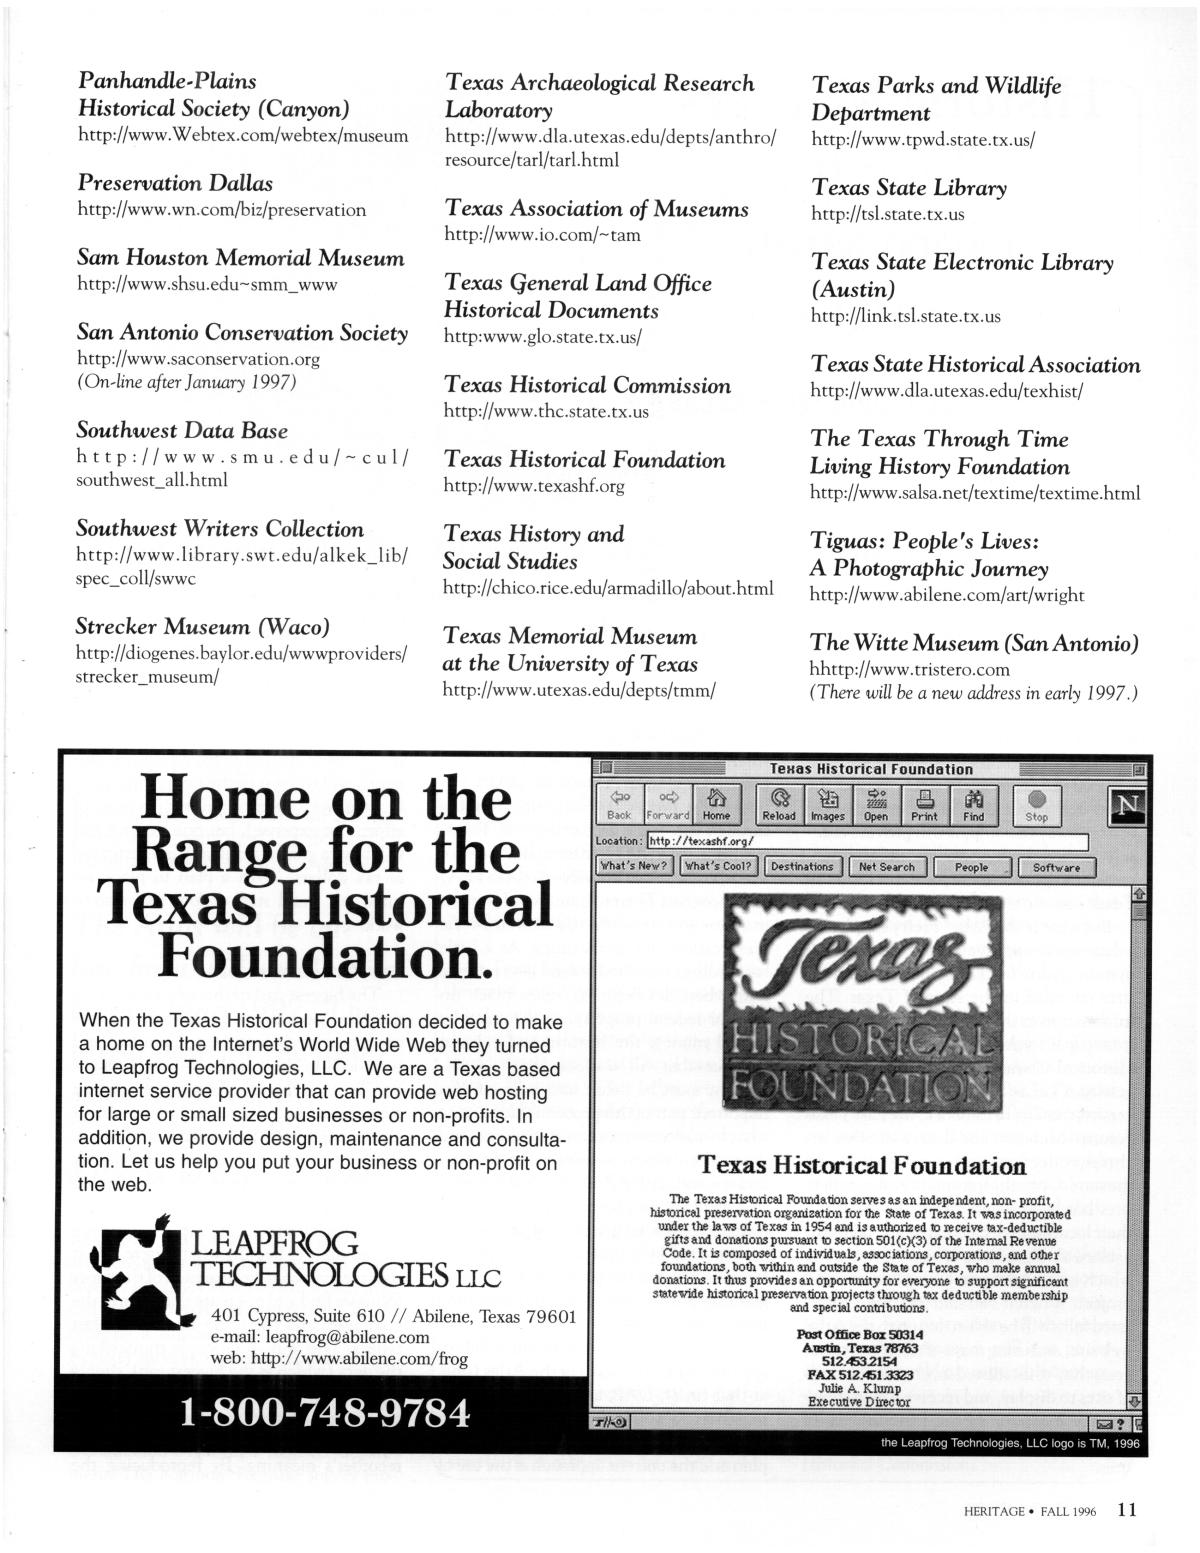 Heritage, Volume 14, Number 4, Fall 1996                                                                                                      11